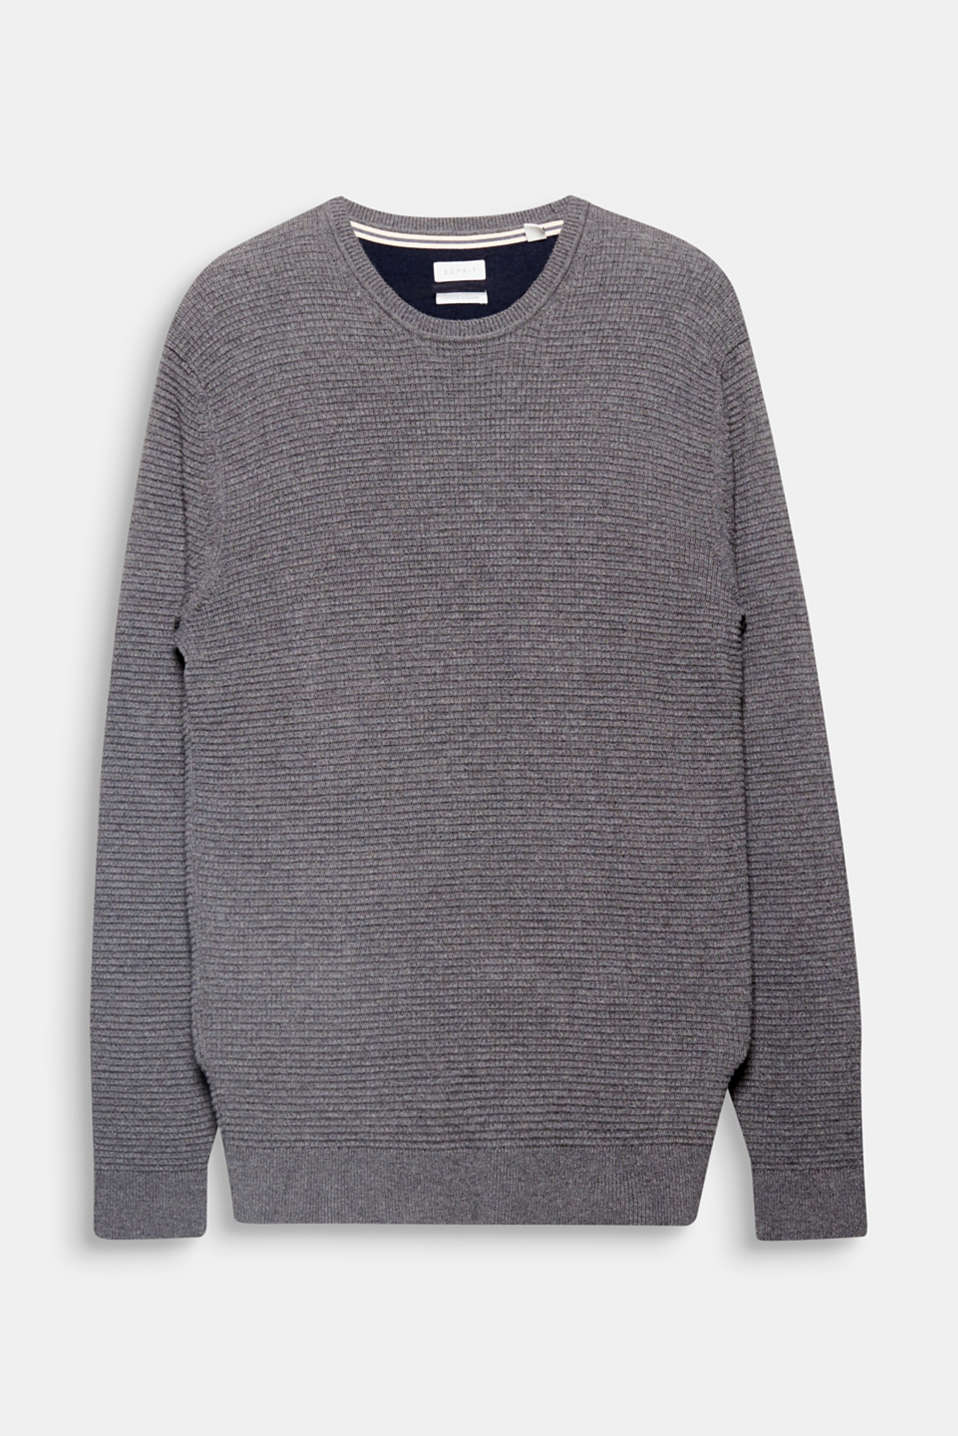 We love texture! The high-quality textured knit in an exquisite cotton/cashmere blend makes this jumper a timeless essential.